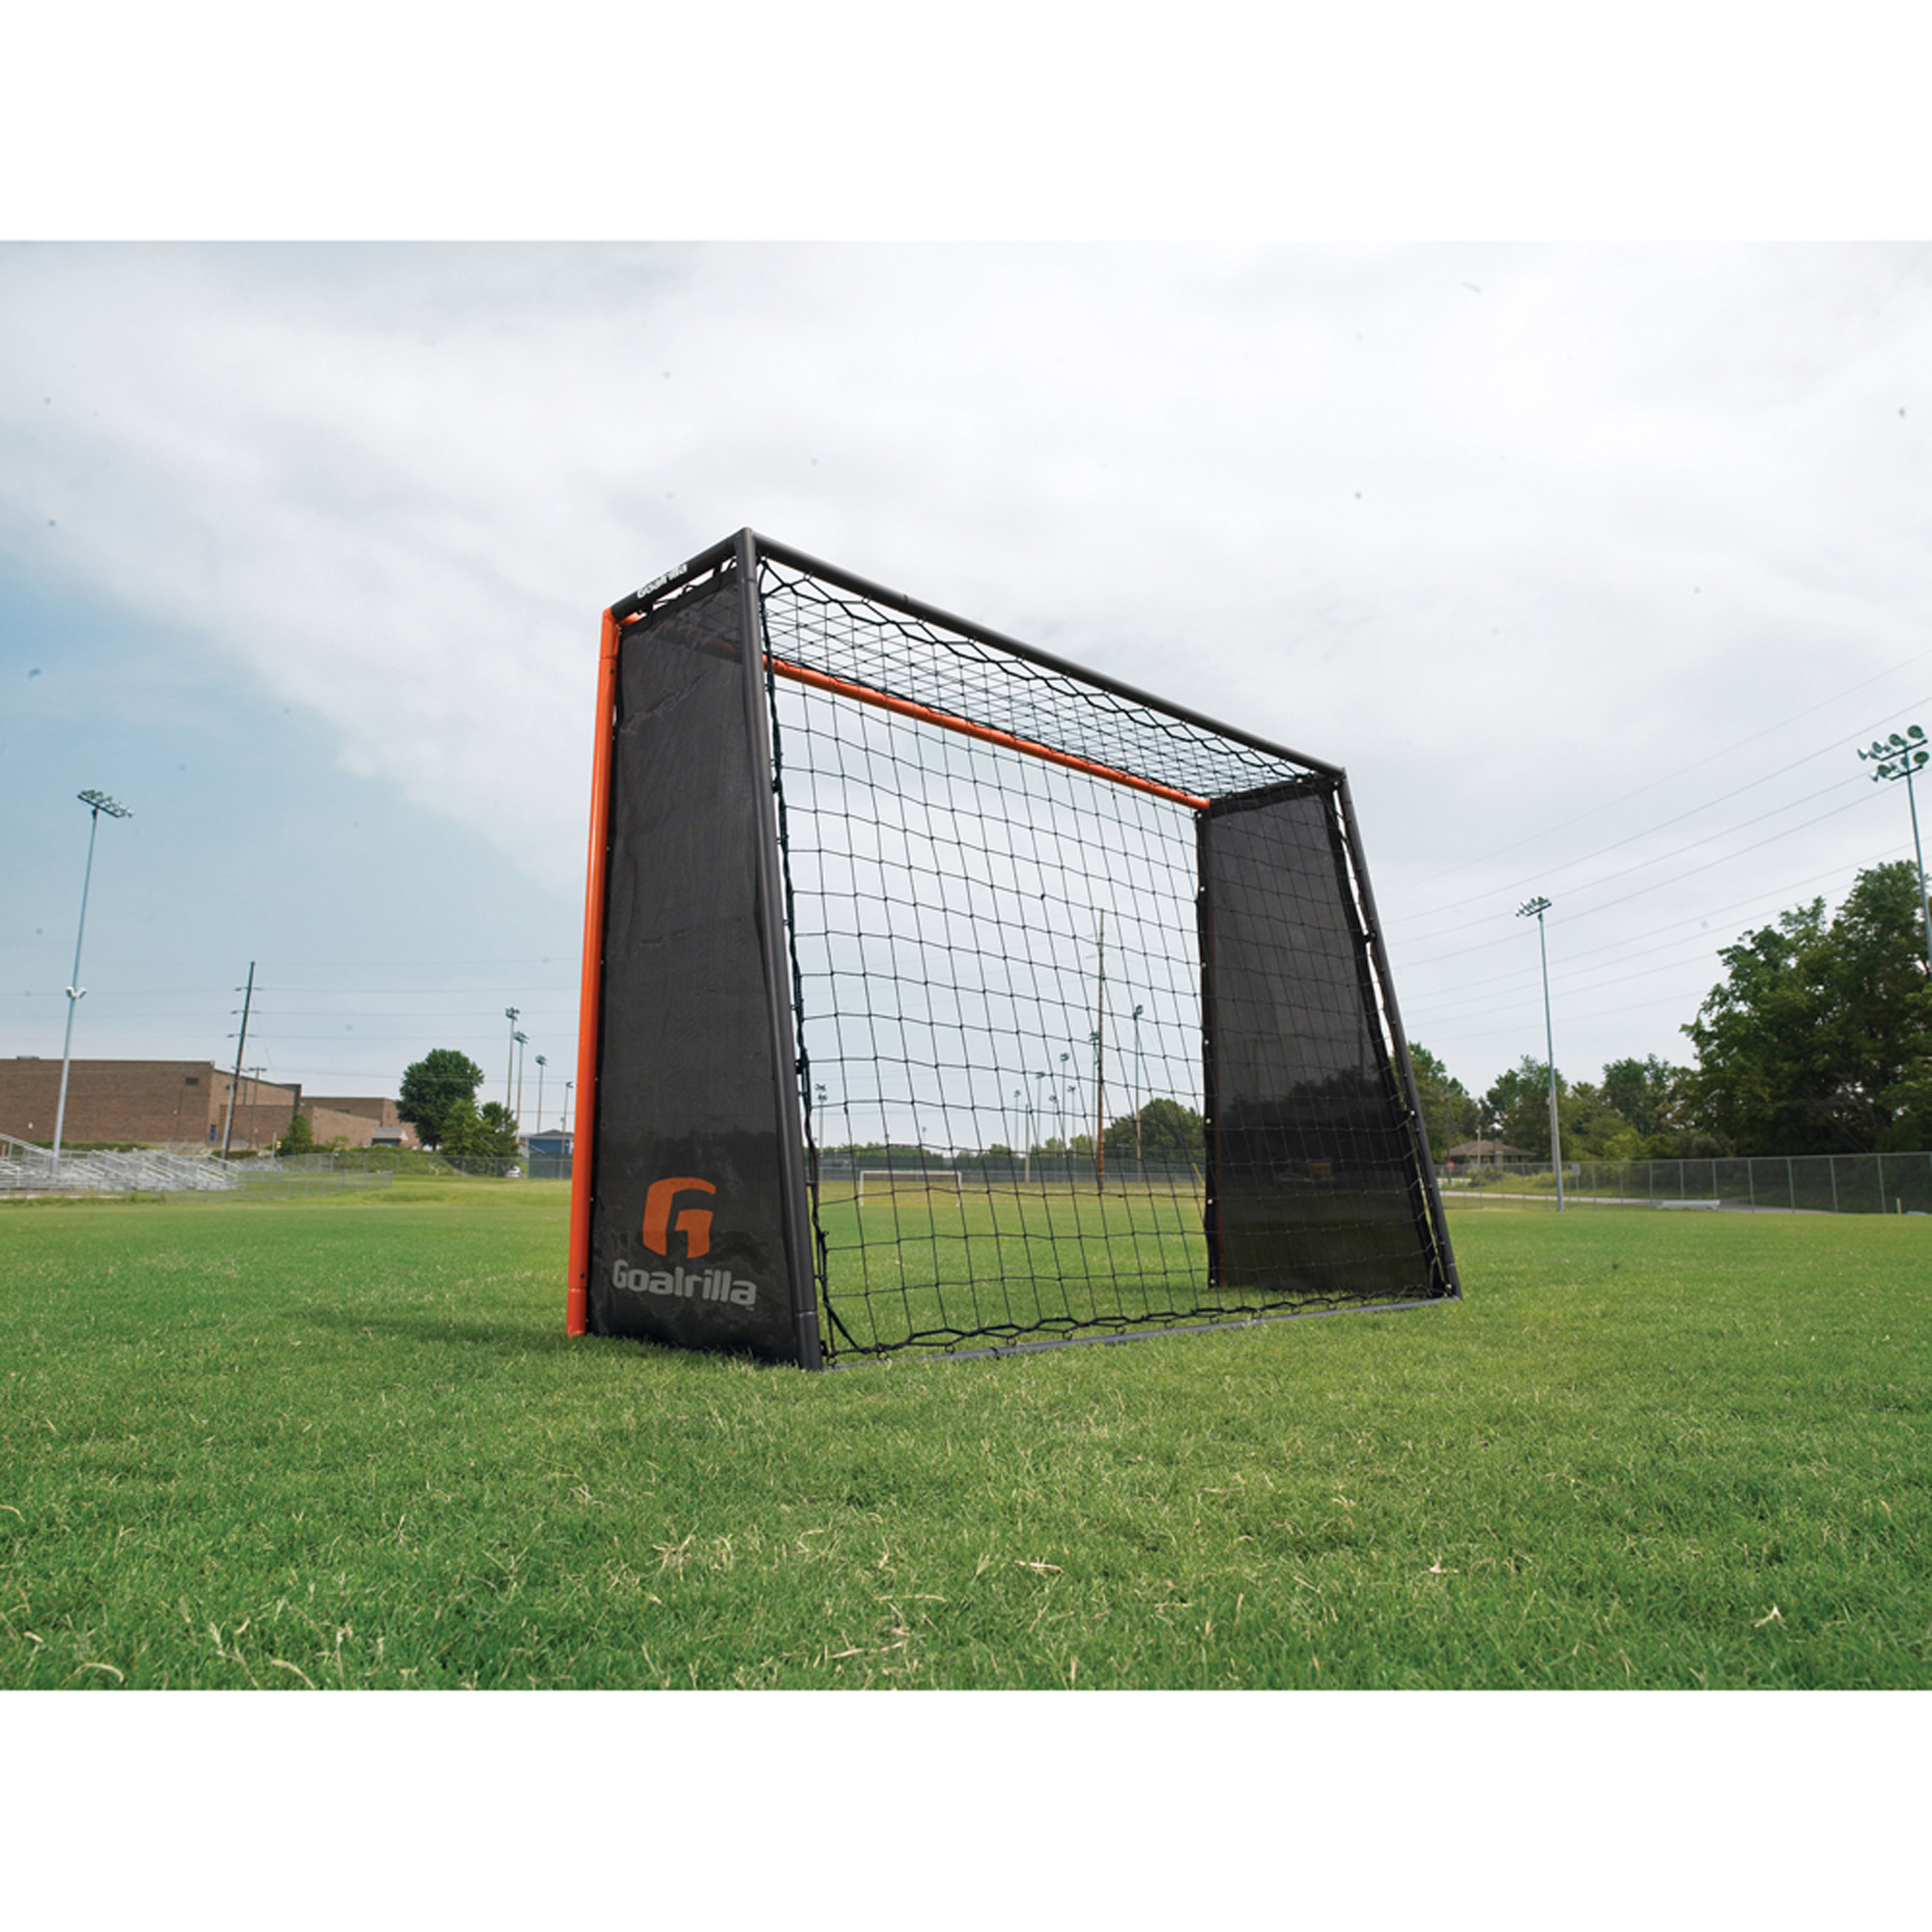 Goalrilla Striker Ultra-Responsive Rebounding Soccer Net and Goal